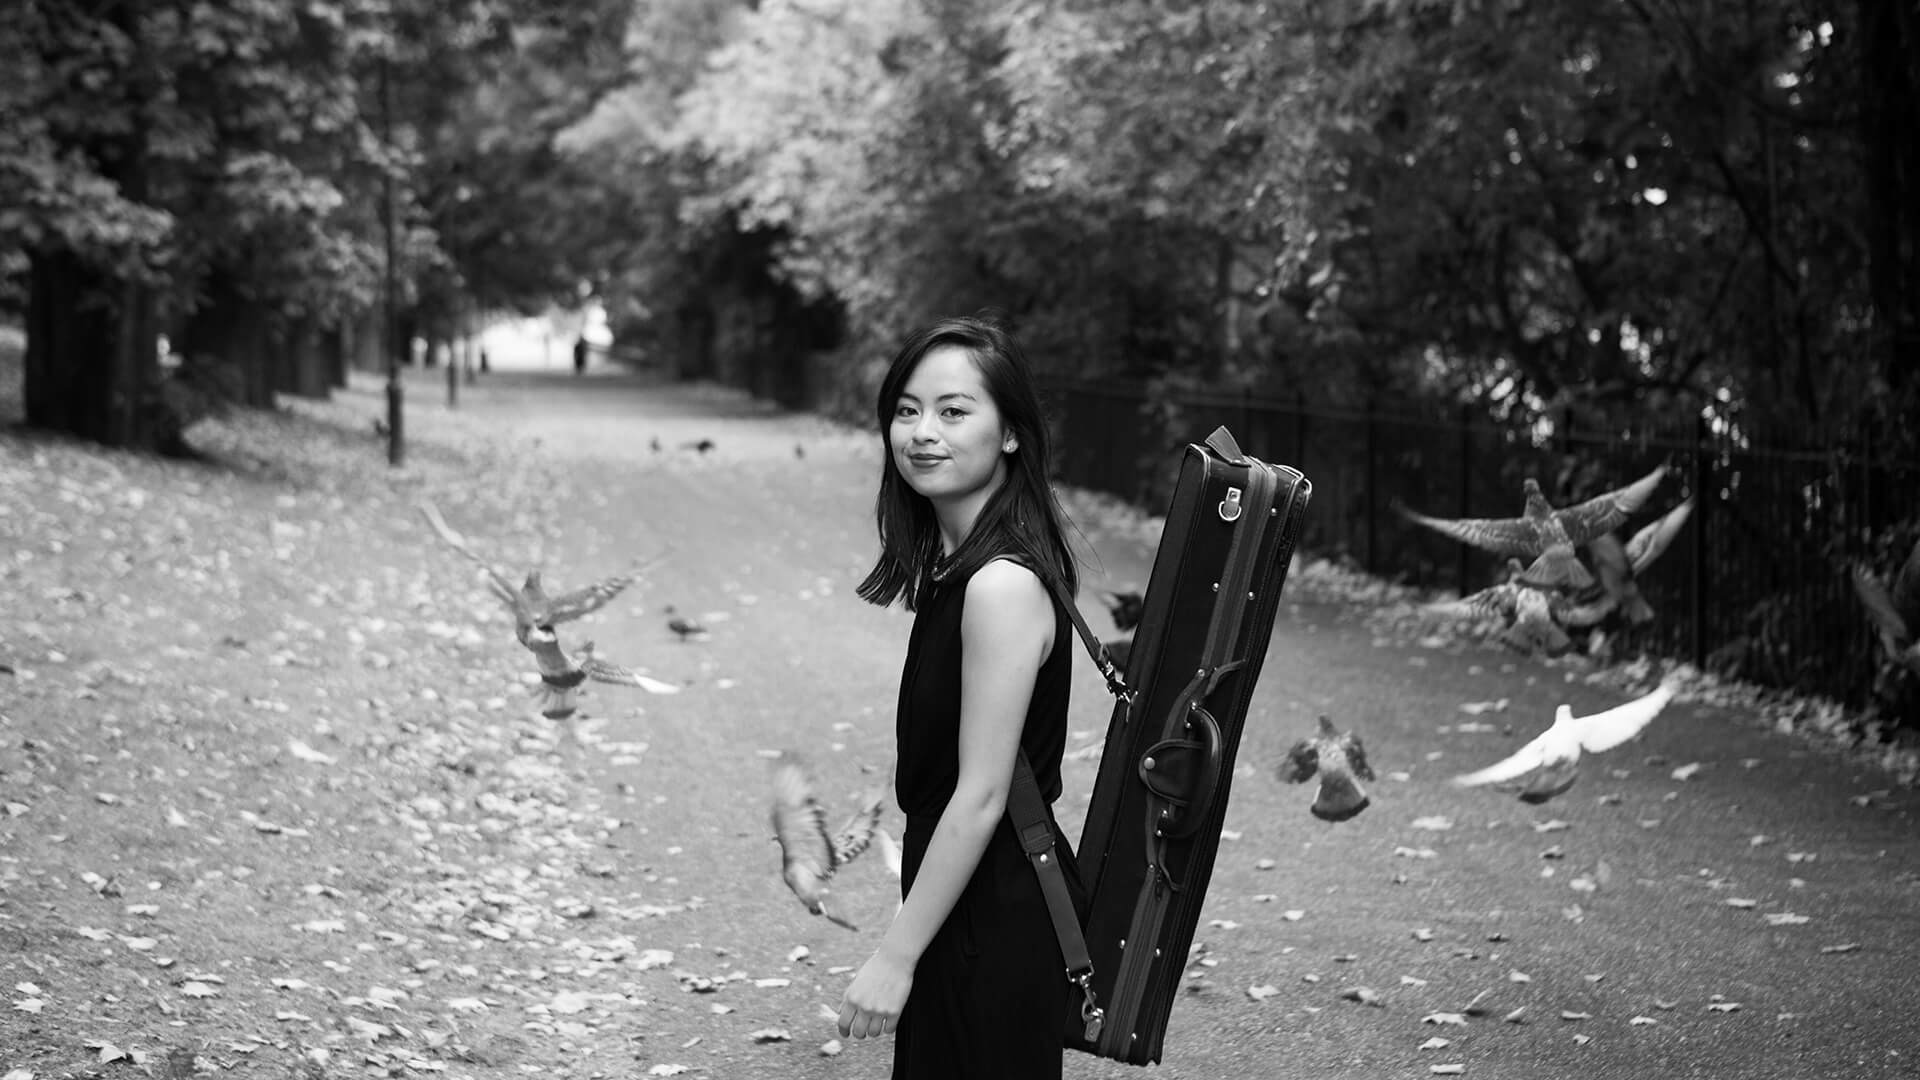 Minn-Mayoe-violinist-London-park